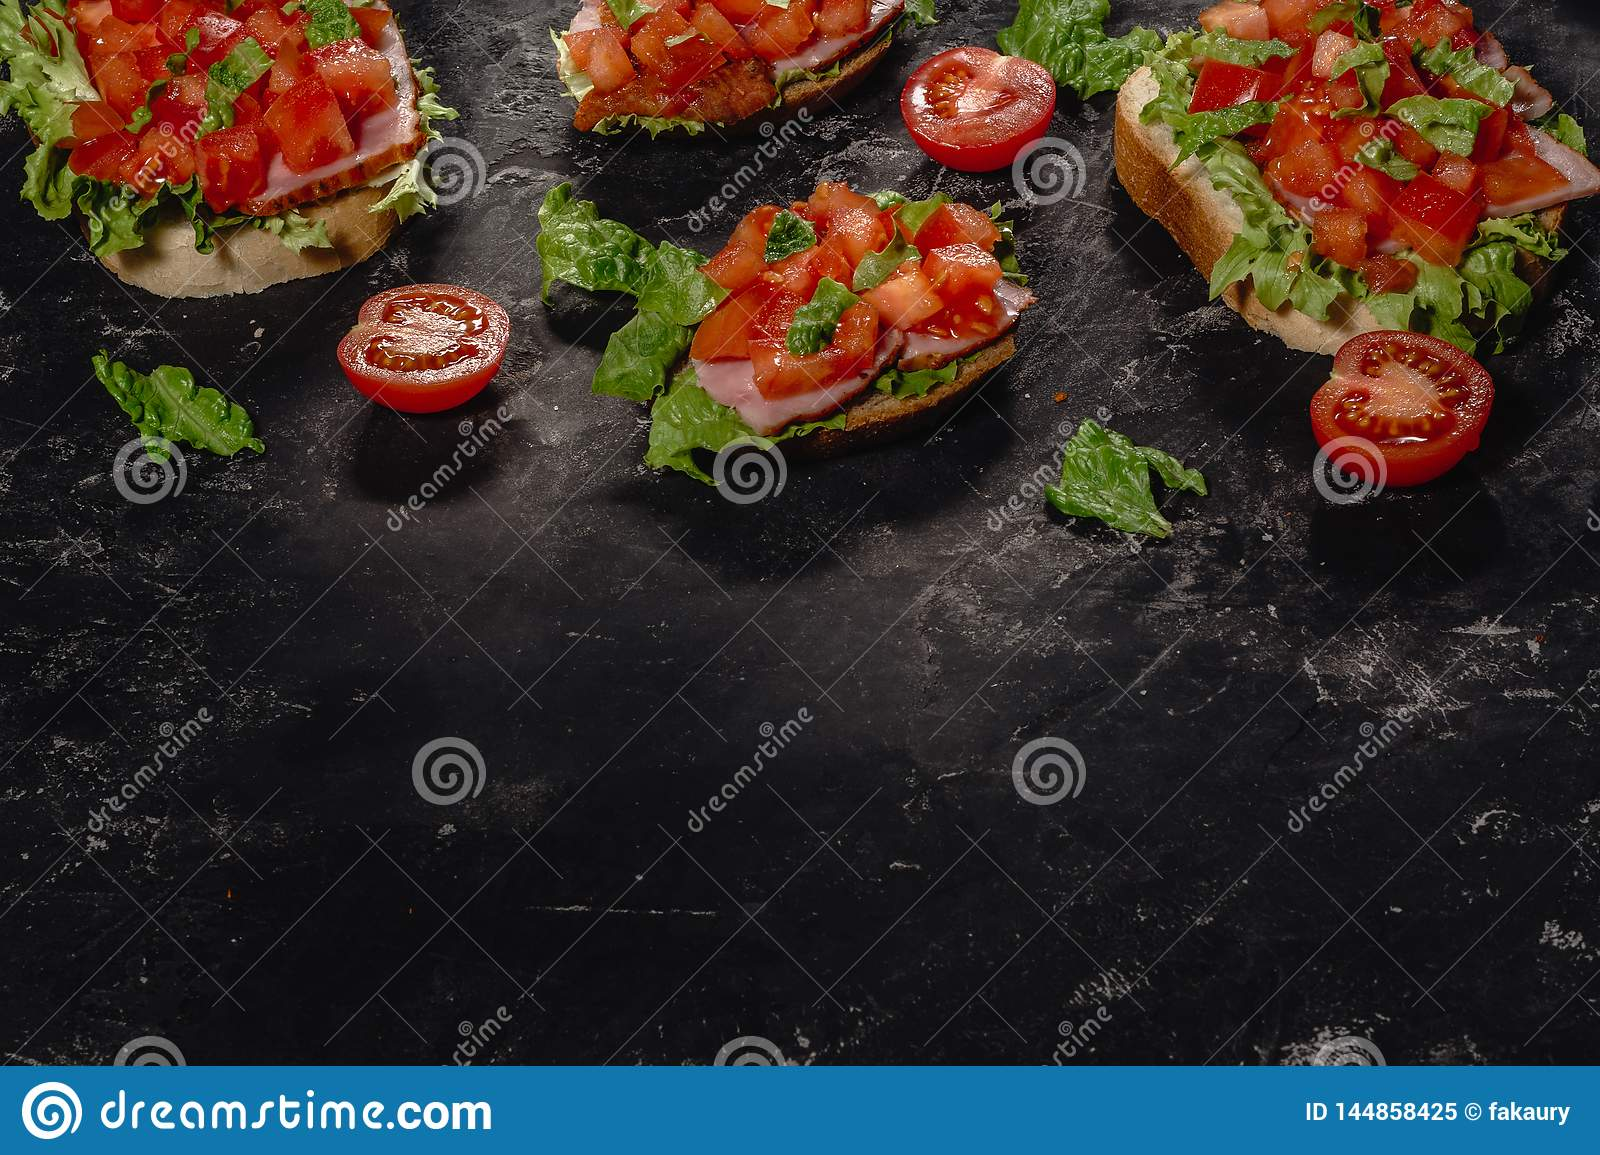 Italian Bruschetta with chopped tomatoes, mozzarella sauce and salad leaves. Traditional italian appetizer or snack, antipasto.